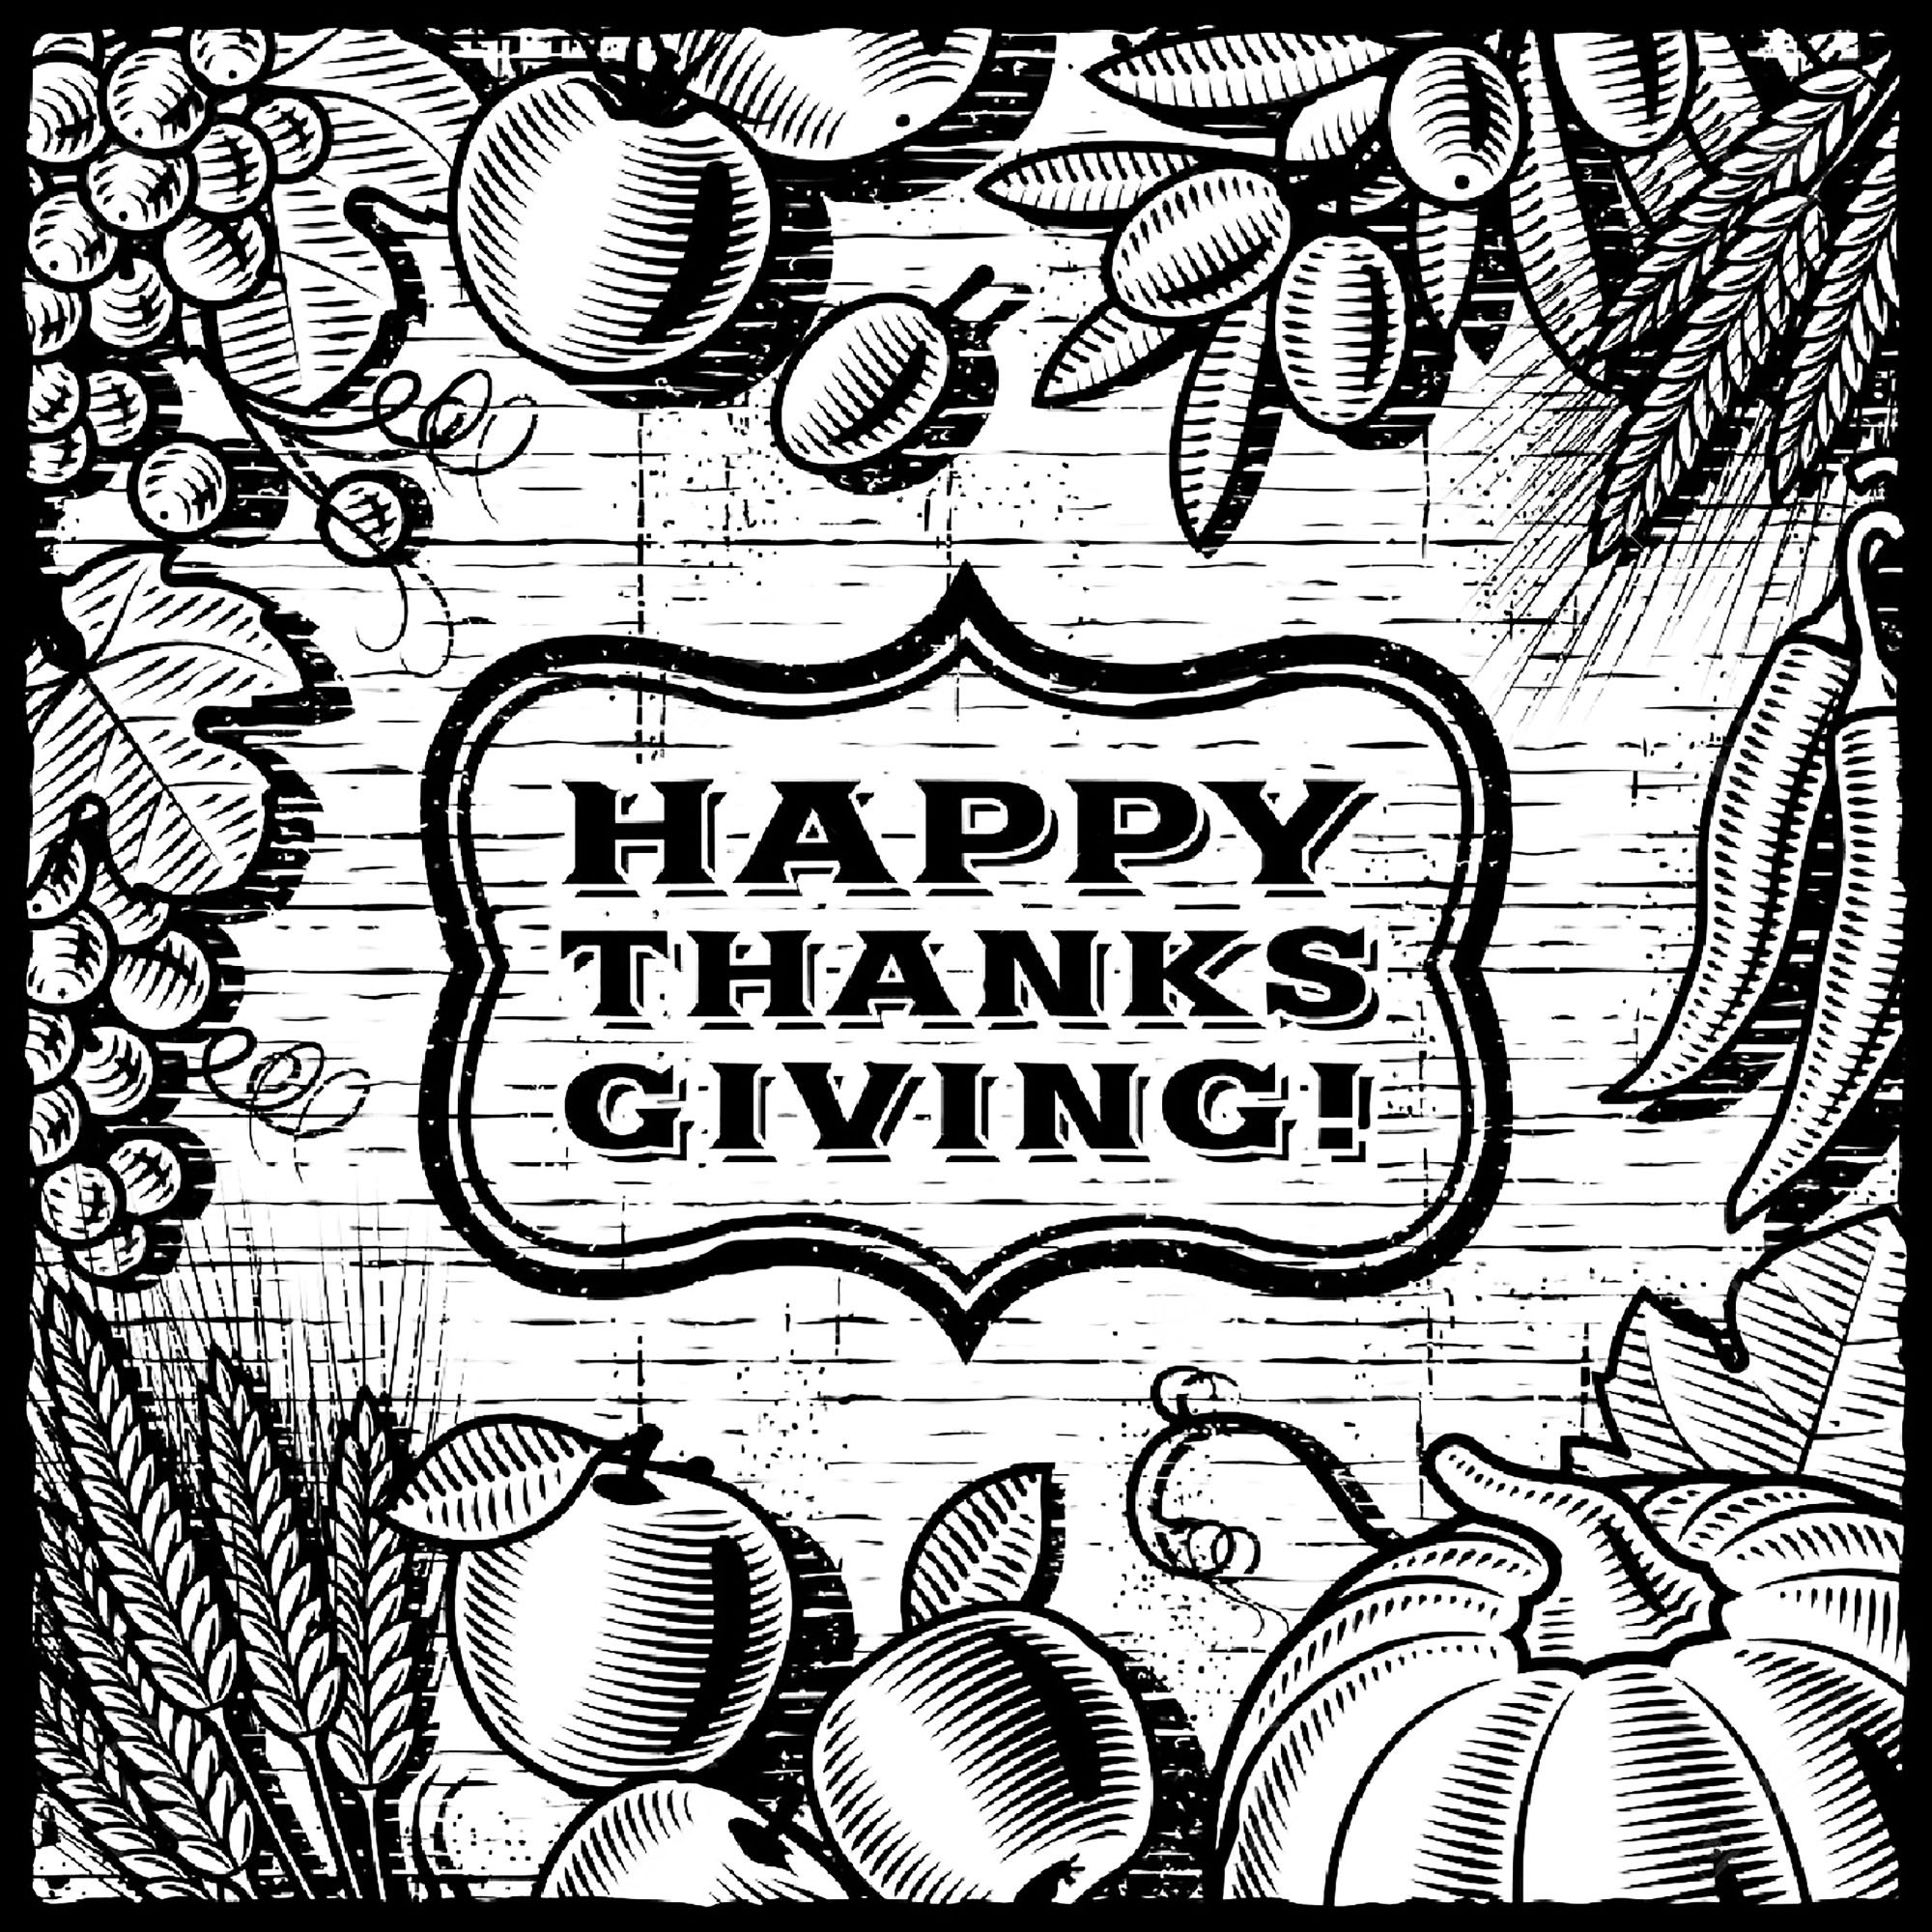 Beautiful & complex coloring page celebrating Thanksgiving Day